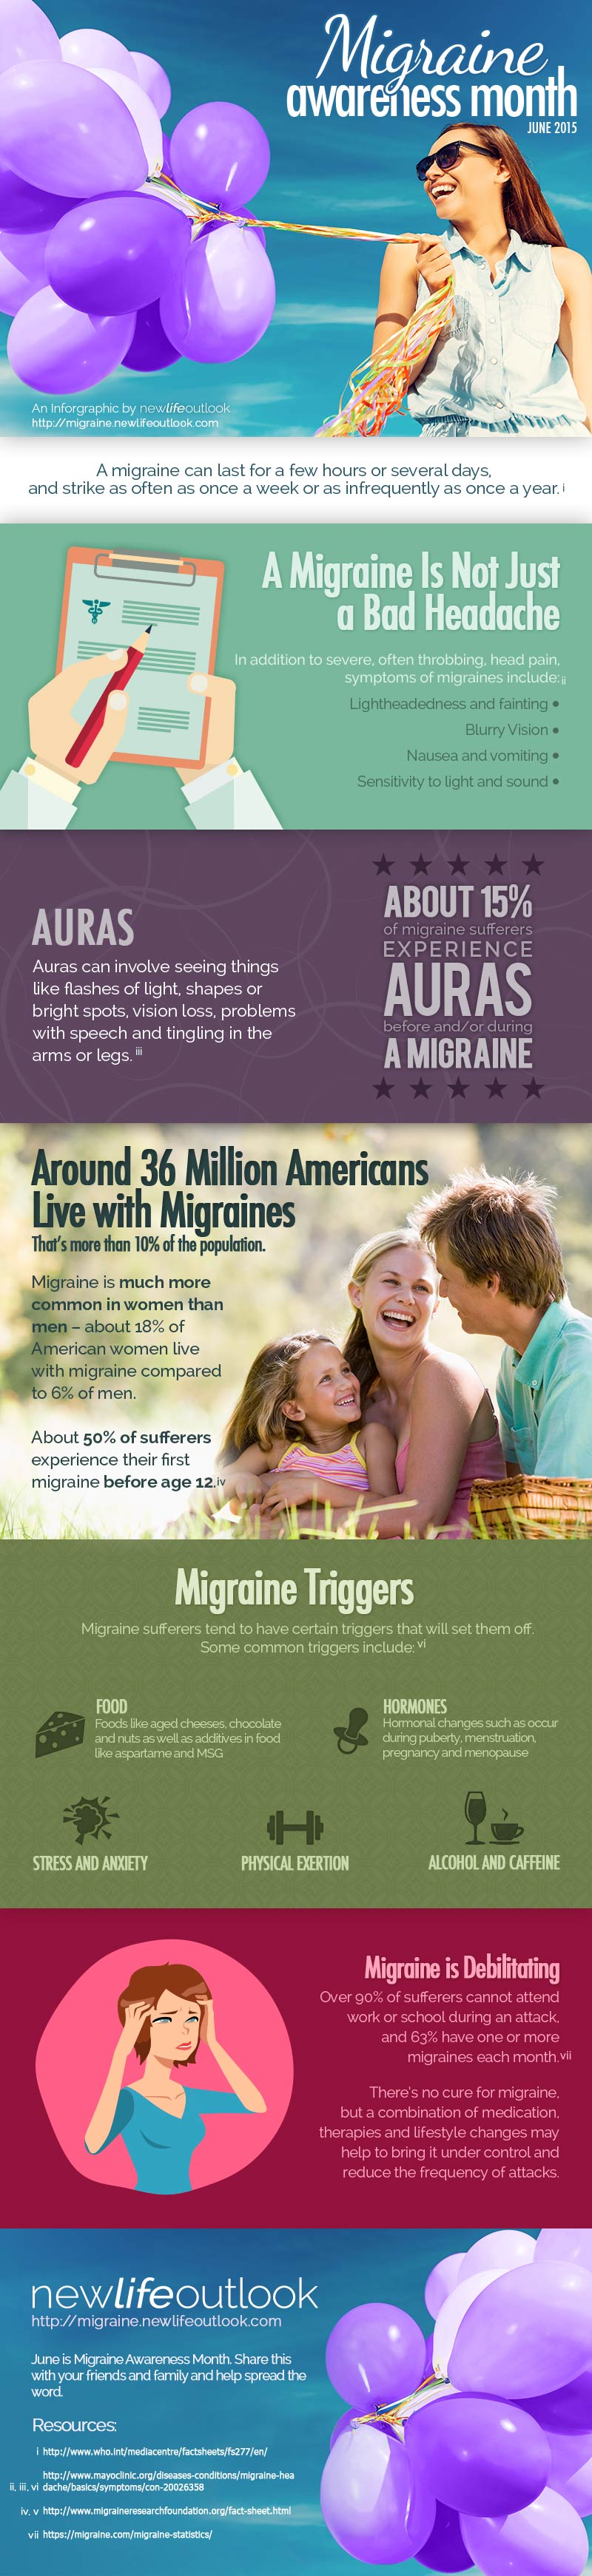 Raising Migraine Awareness